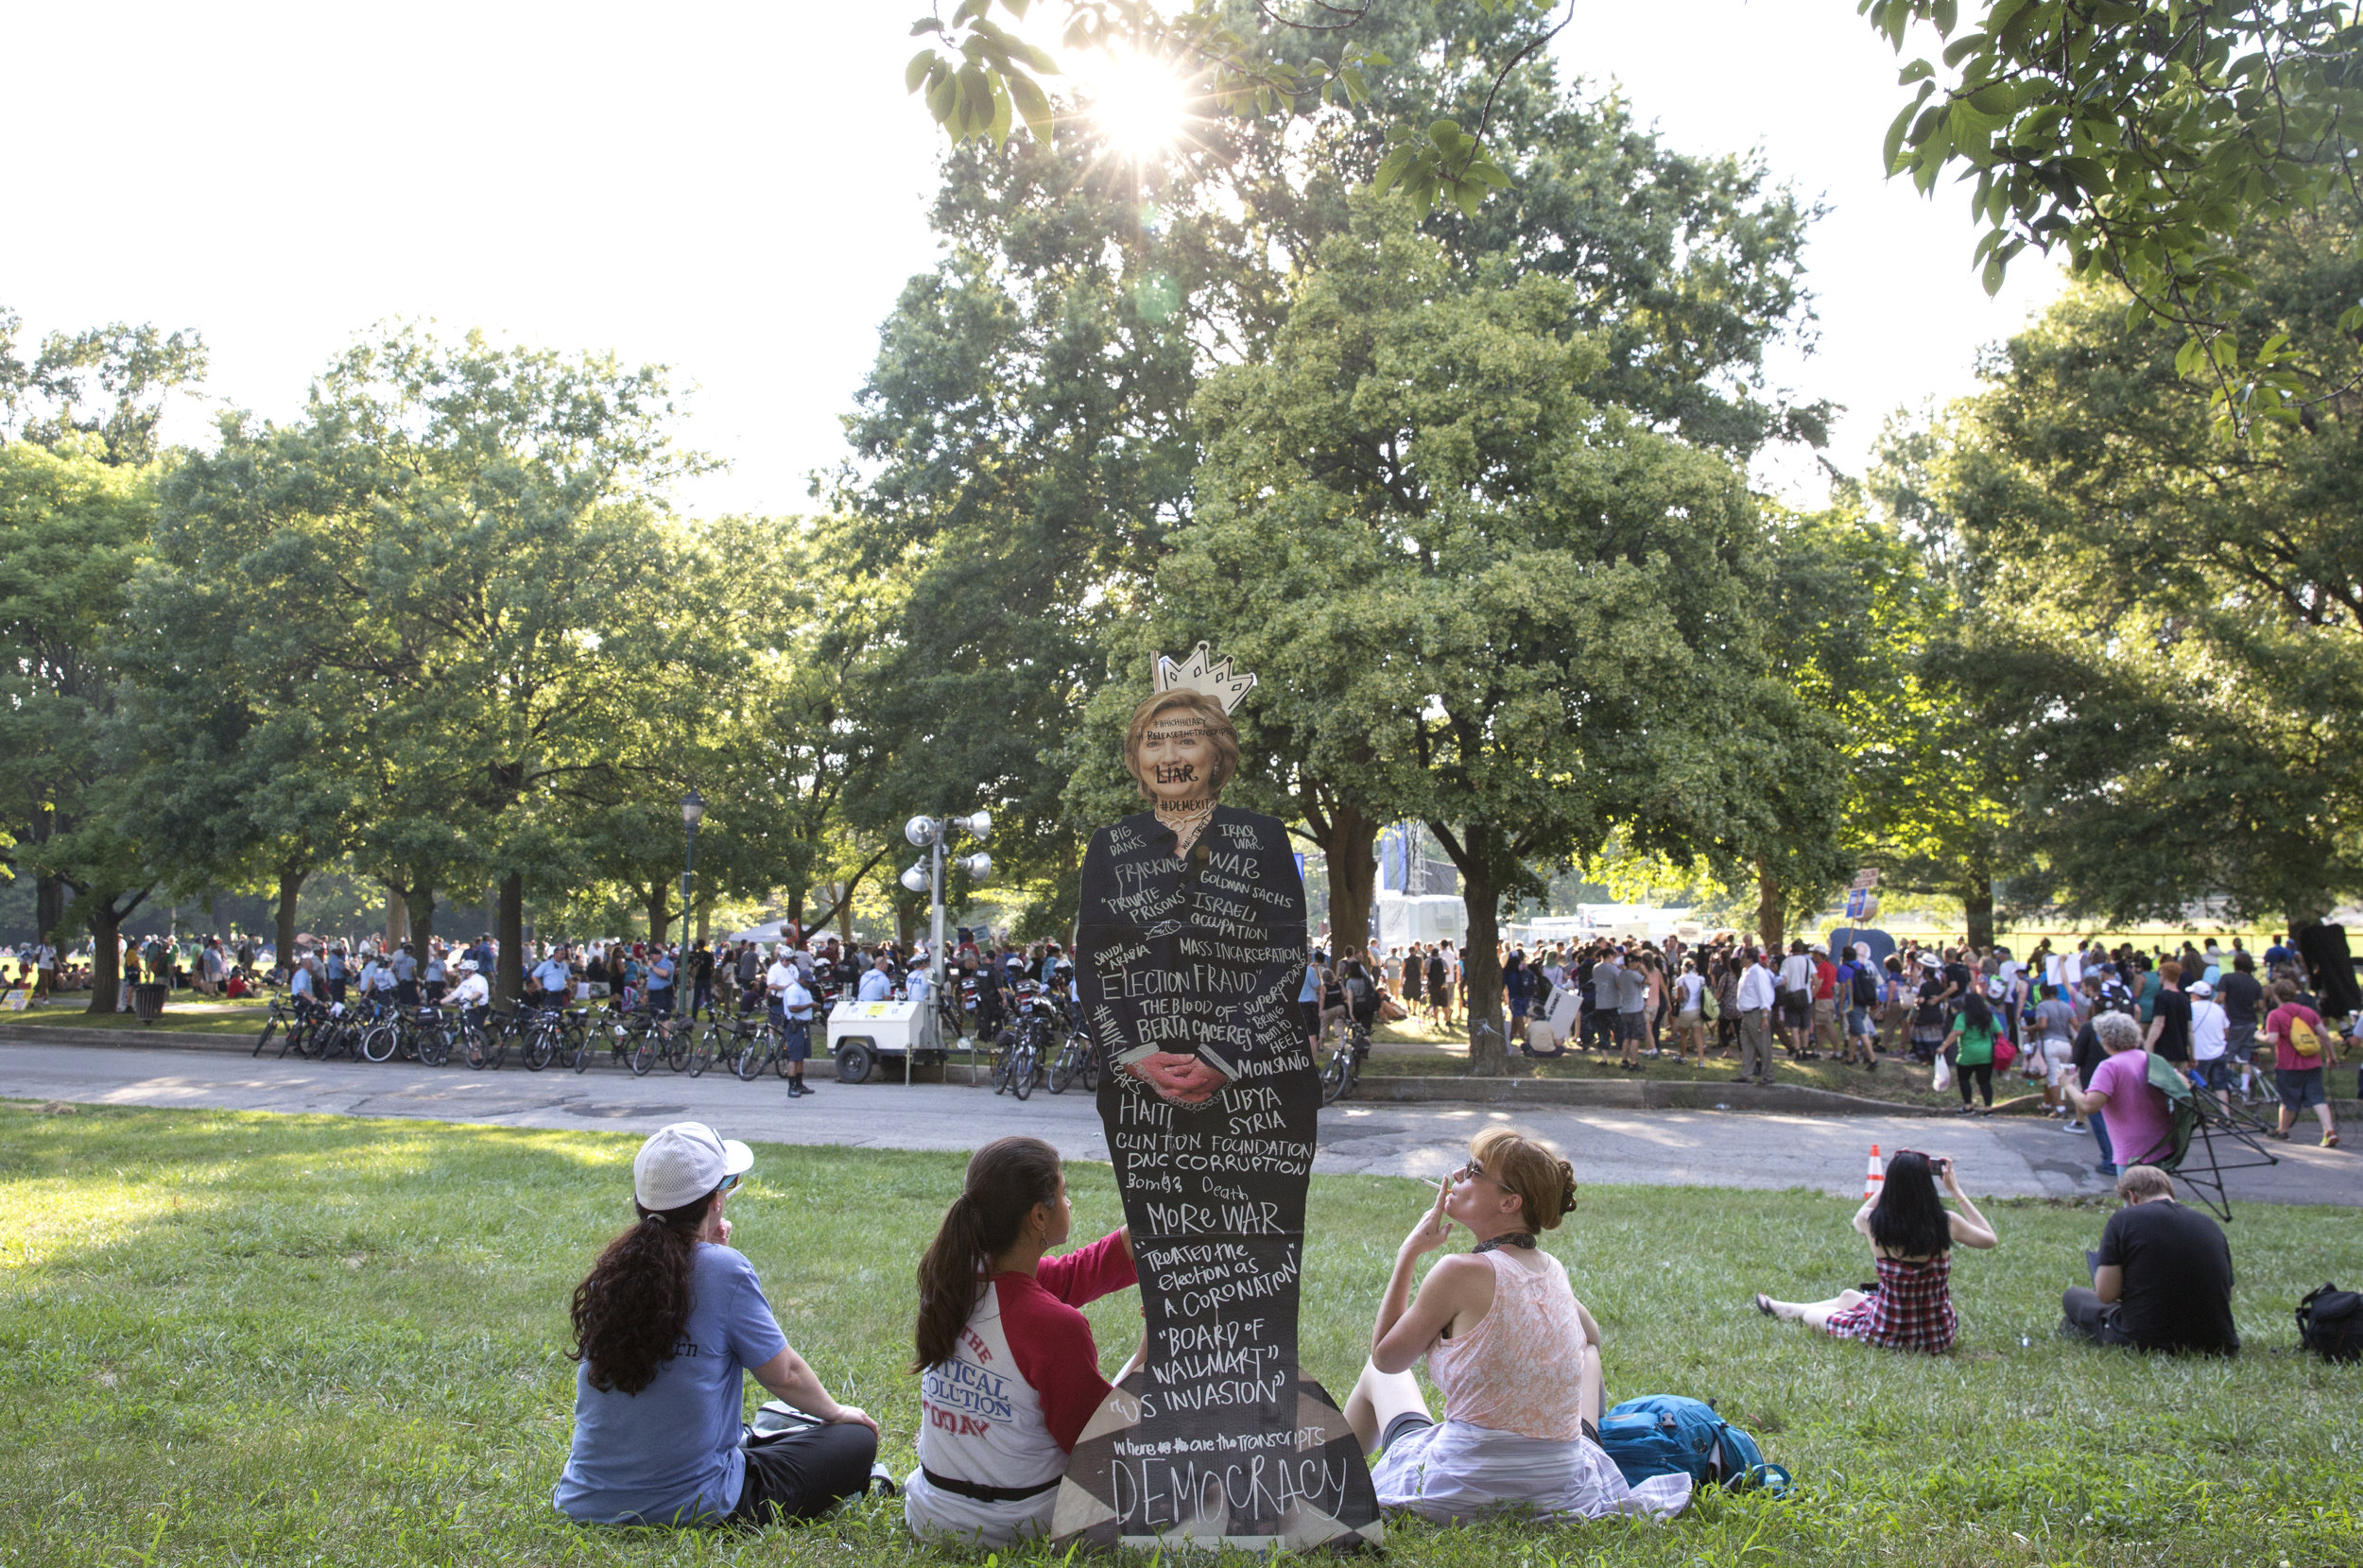 Bernie Sanders supporters hold up a Hillary Clinton cutout while sitting on the grass during the Democratic National Convention in Philadelphia on Tuesday, July 26, 2016.